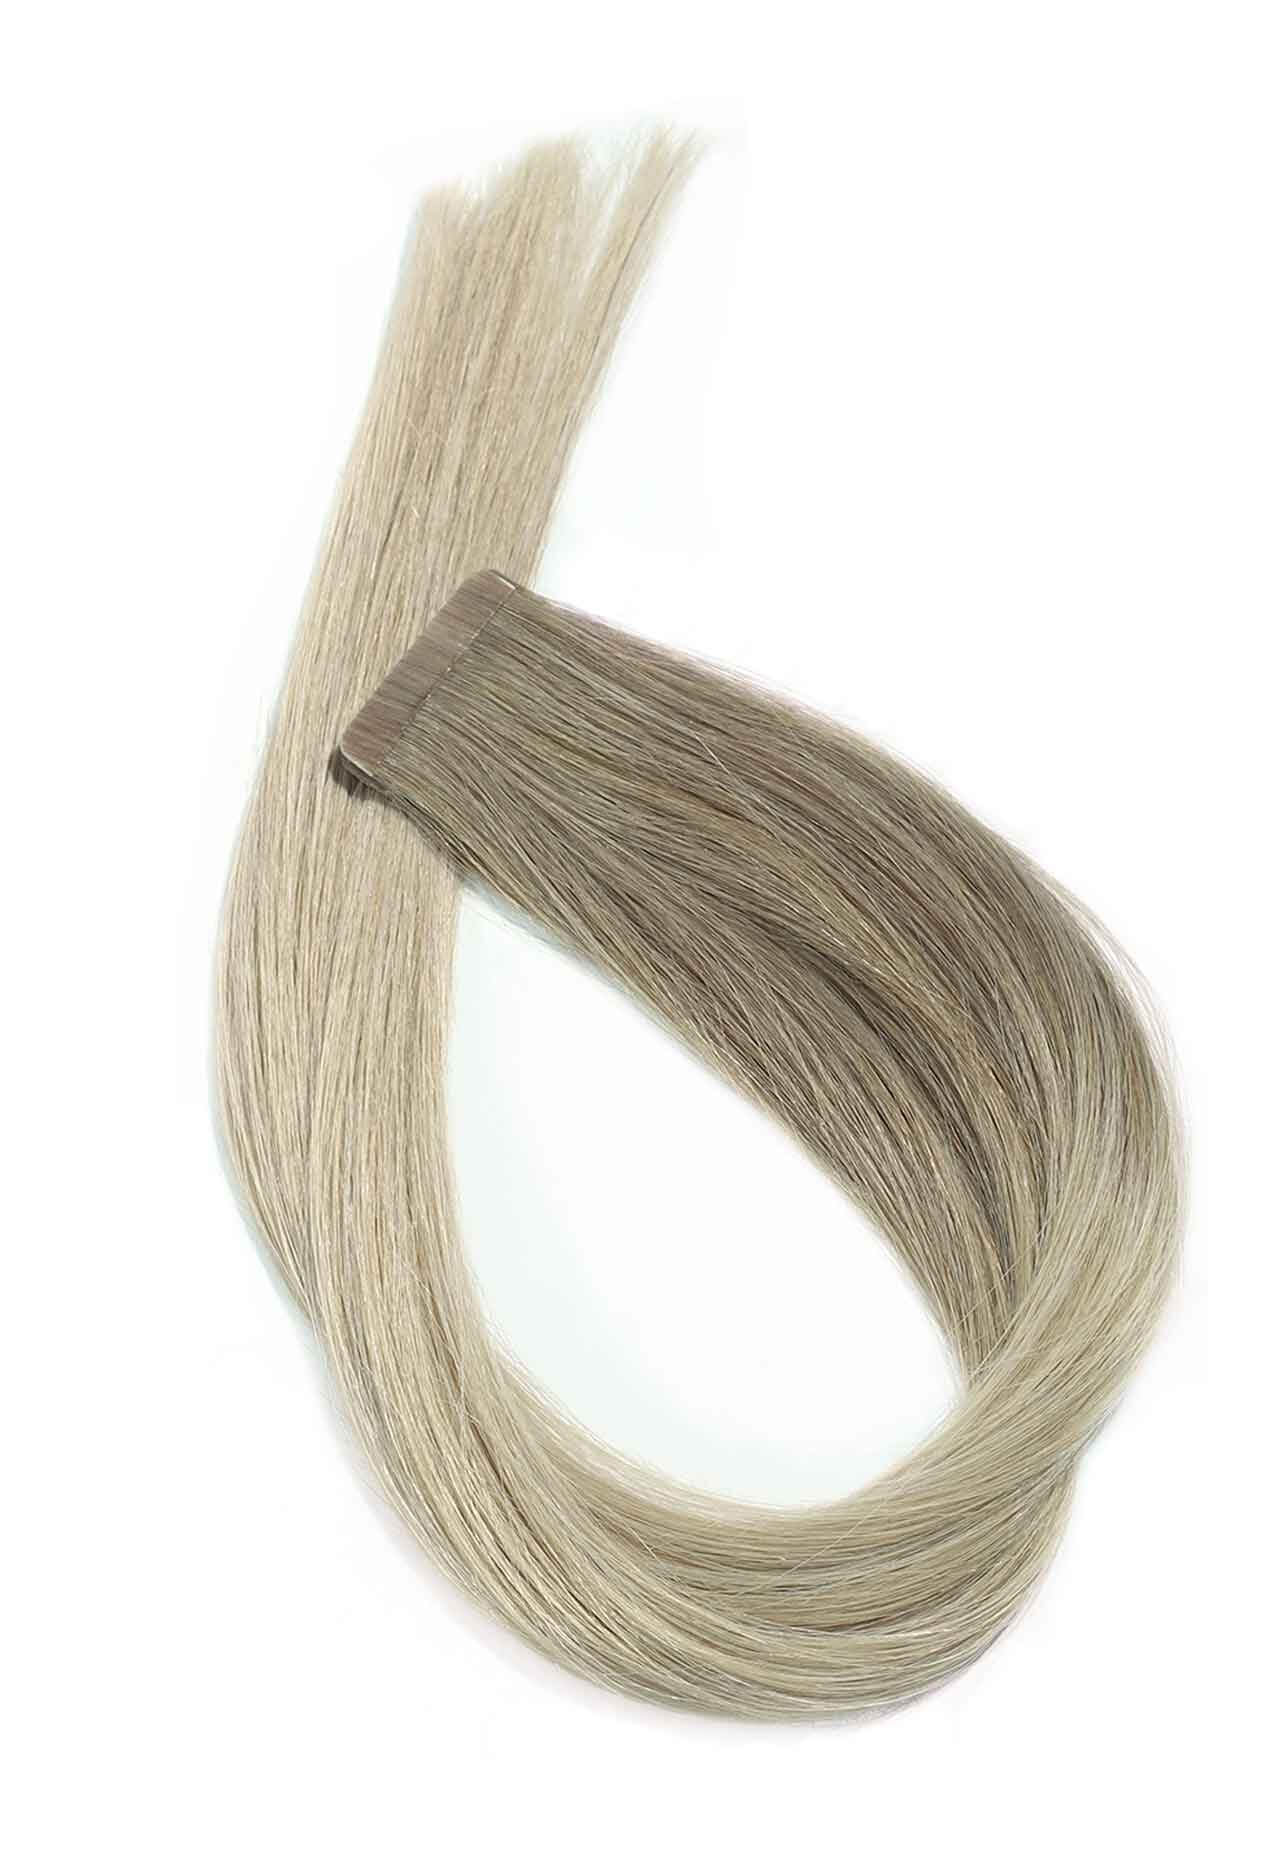 Blonde Tape Extensions | Beauty Works